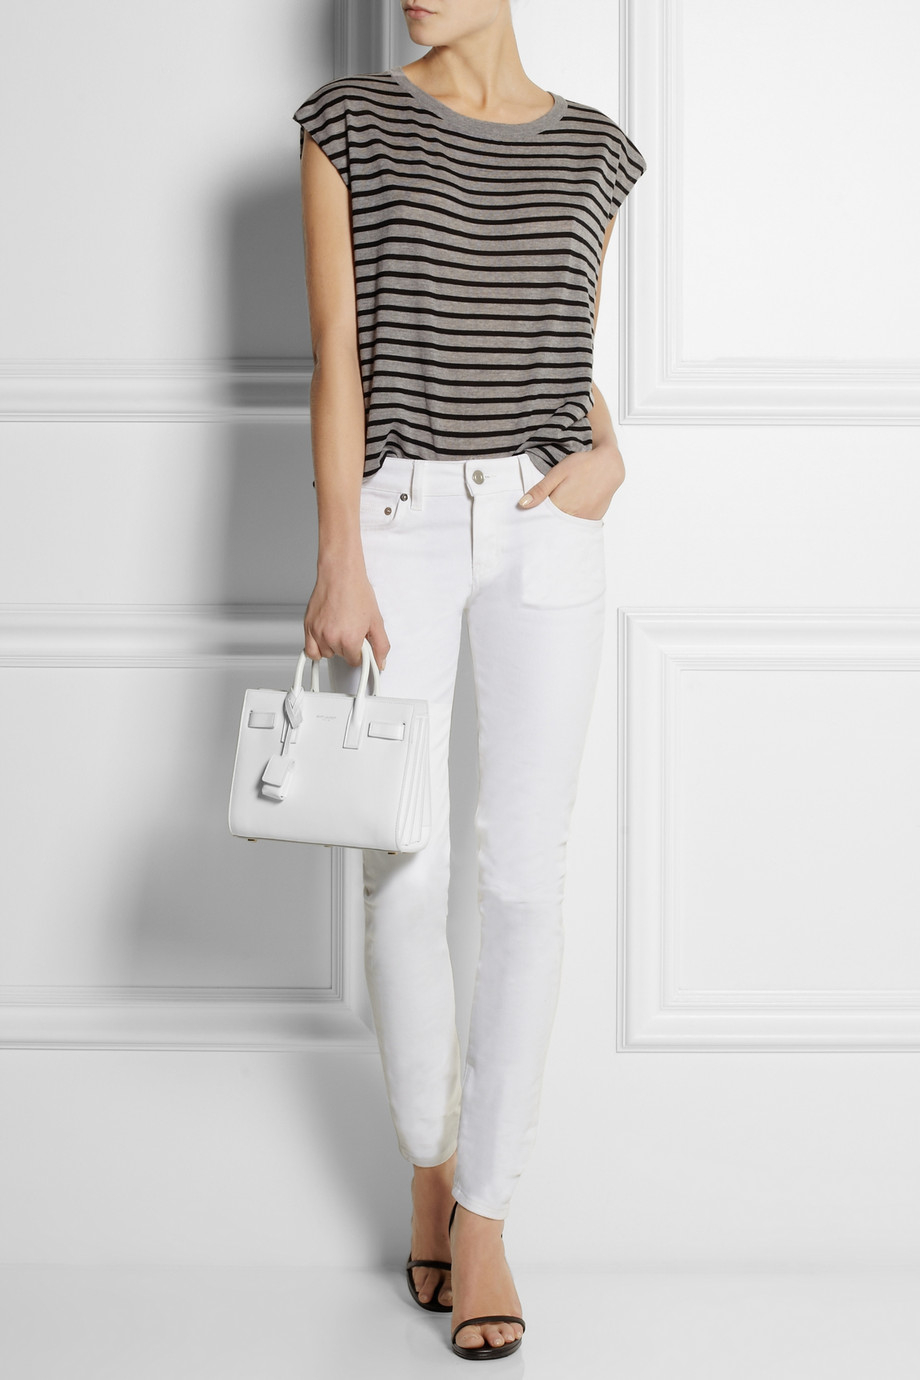 Saint Laurent Sac De Jour Nano Baby Leather Tote In White